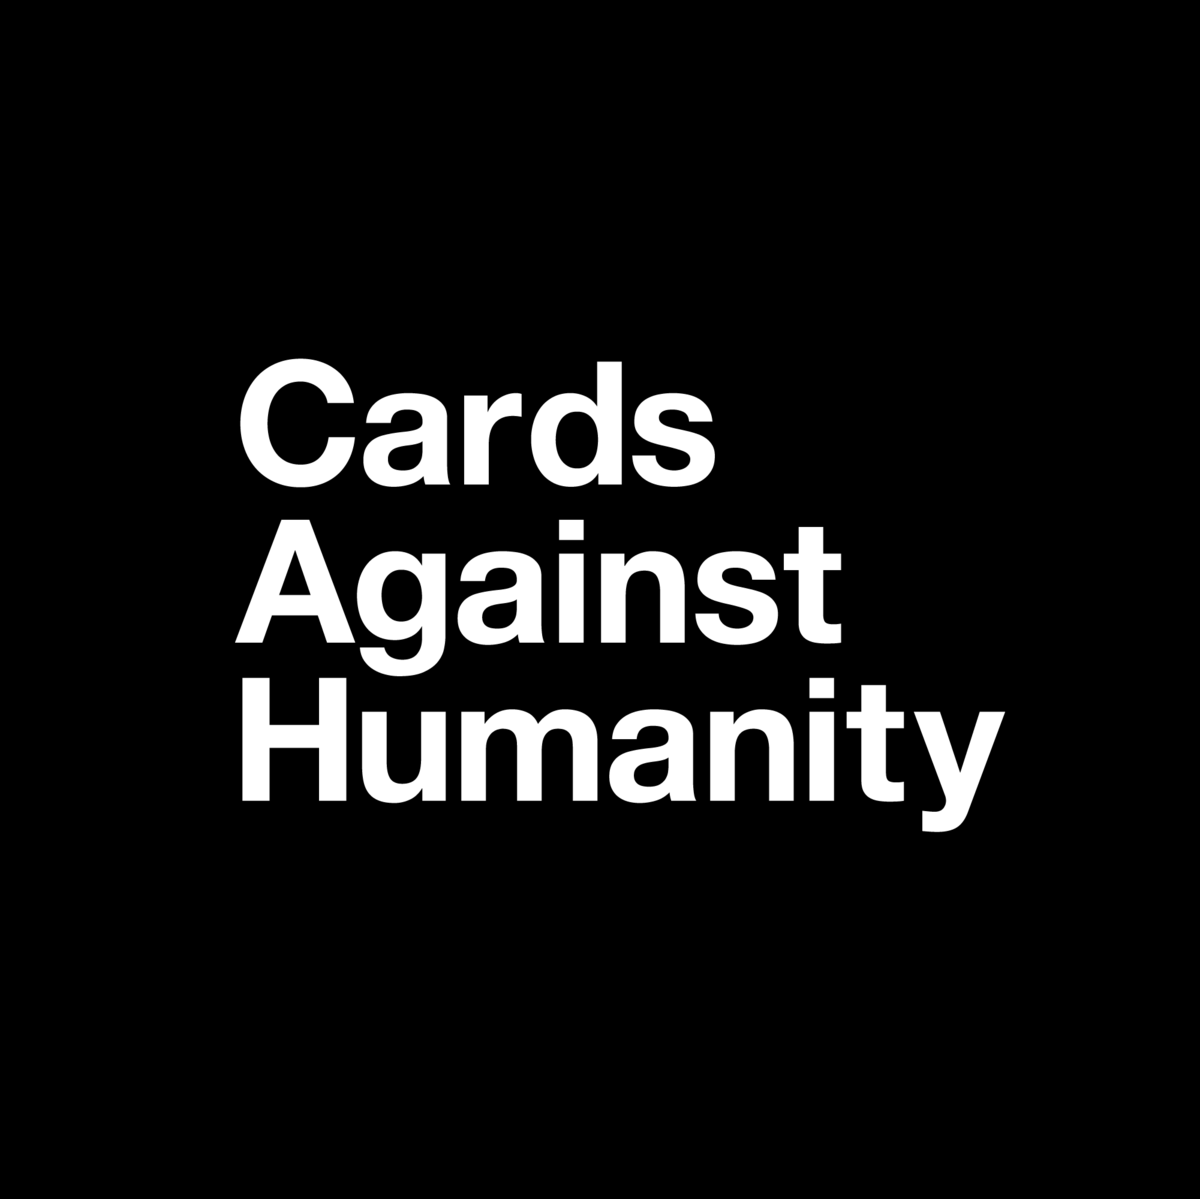 Cards Against Humanity Wikipedia